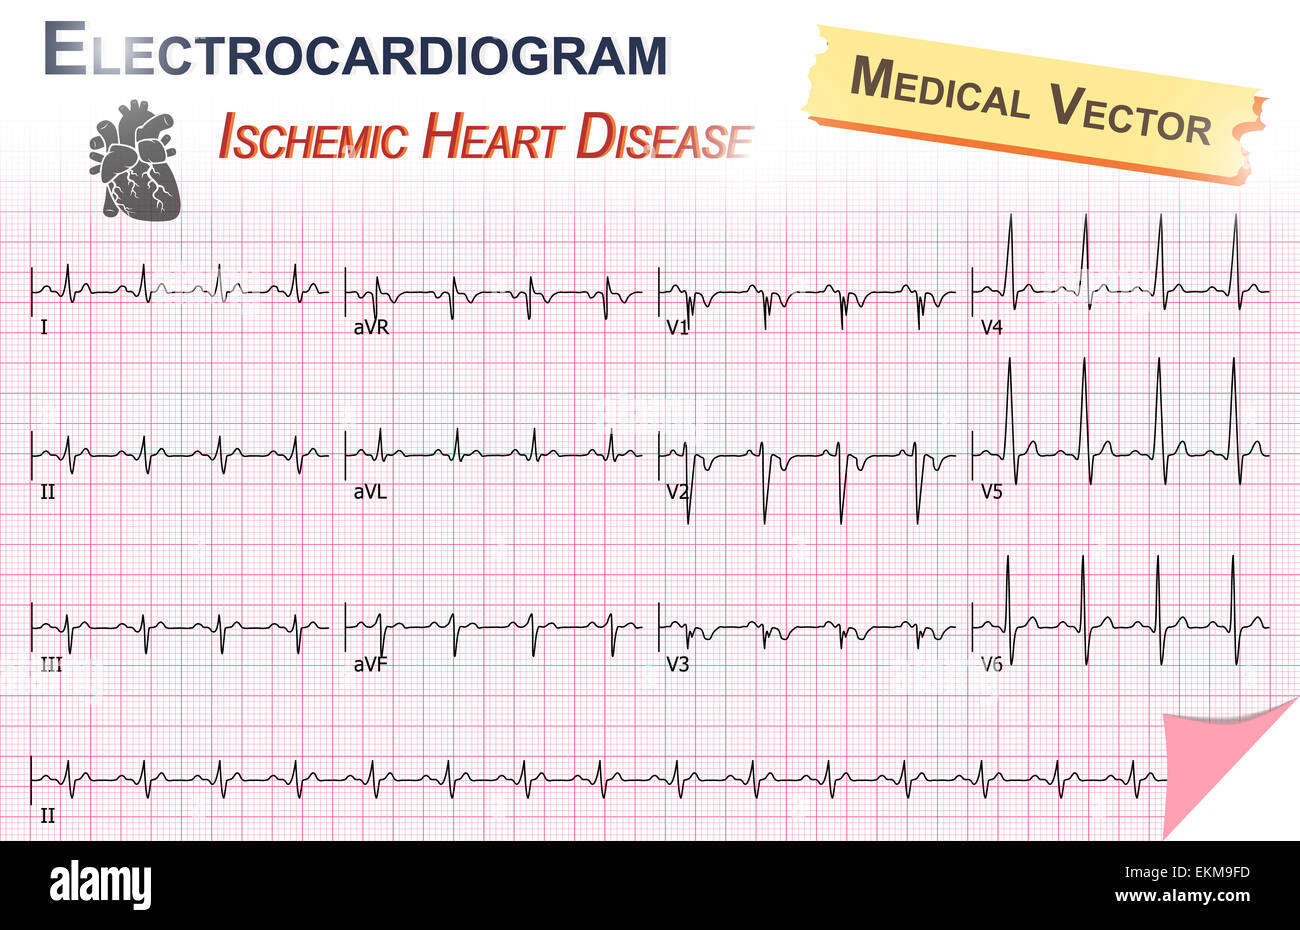 Electrocardiogram ( ECG , EKG ) of Ischemic Heart Disease Stock ...